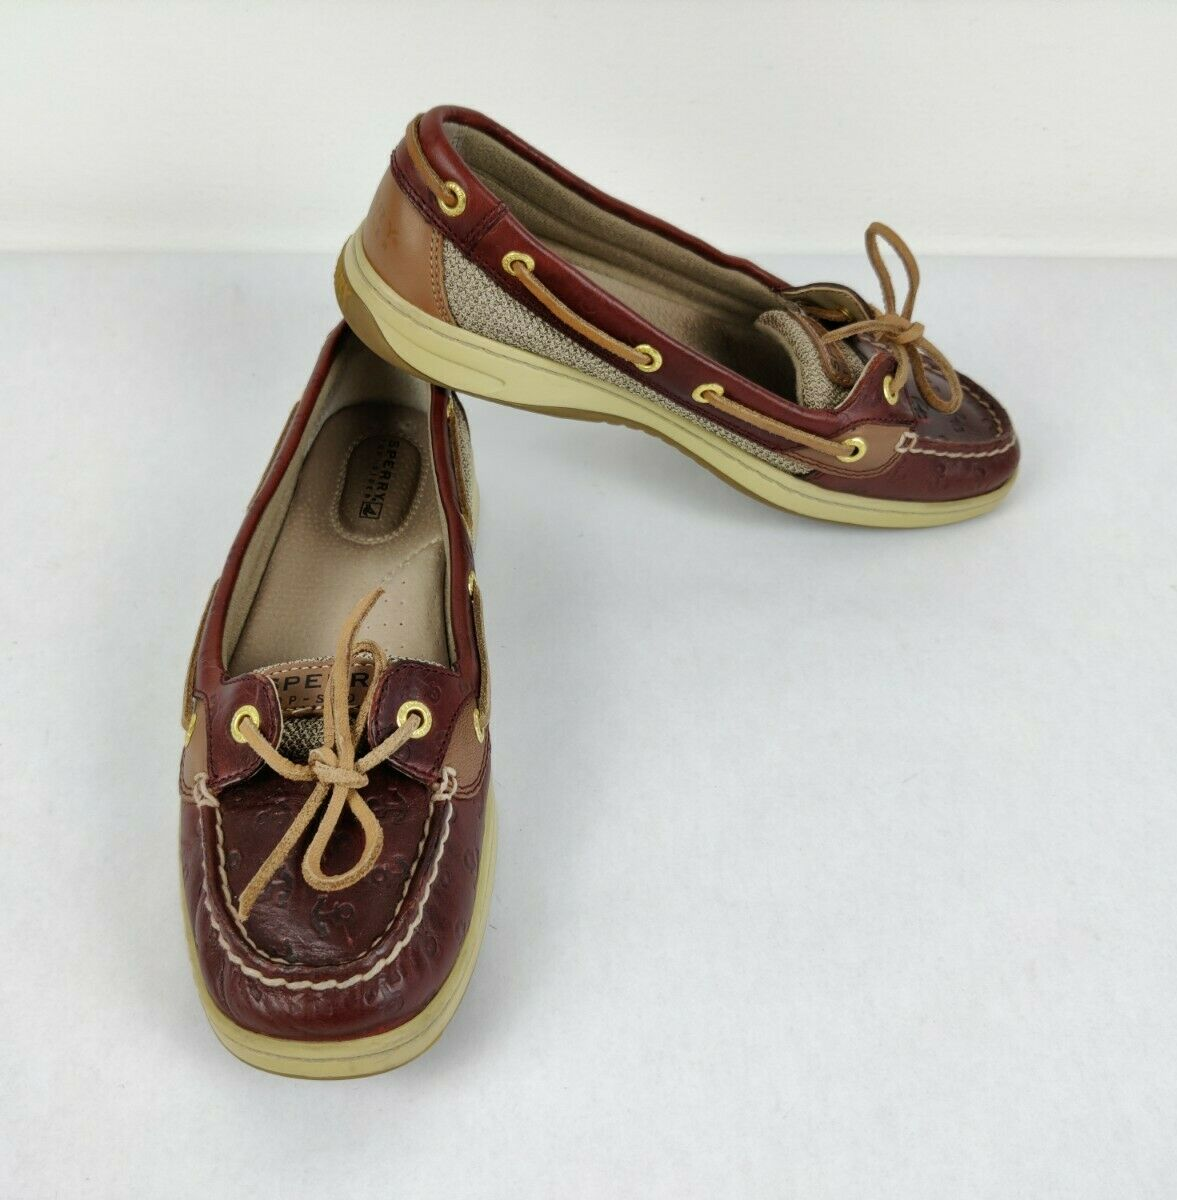 Sperry Top Sider Anglefish Cordovan Anchor Brown Boat Shoes 9102898 Size 8M